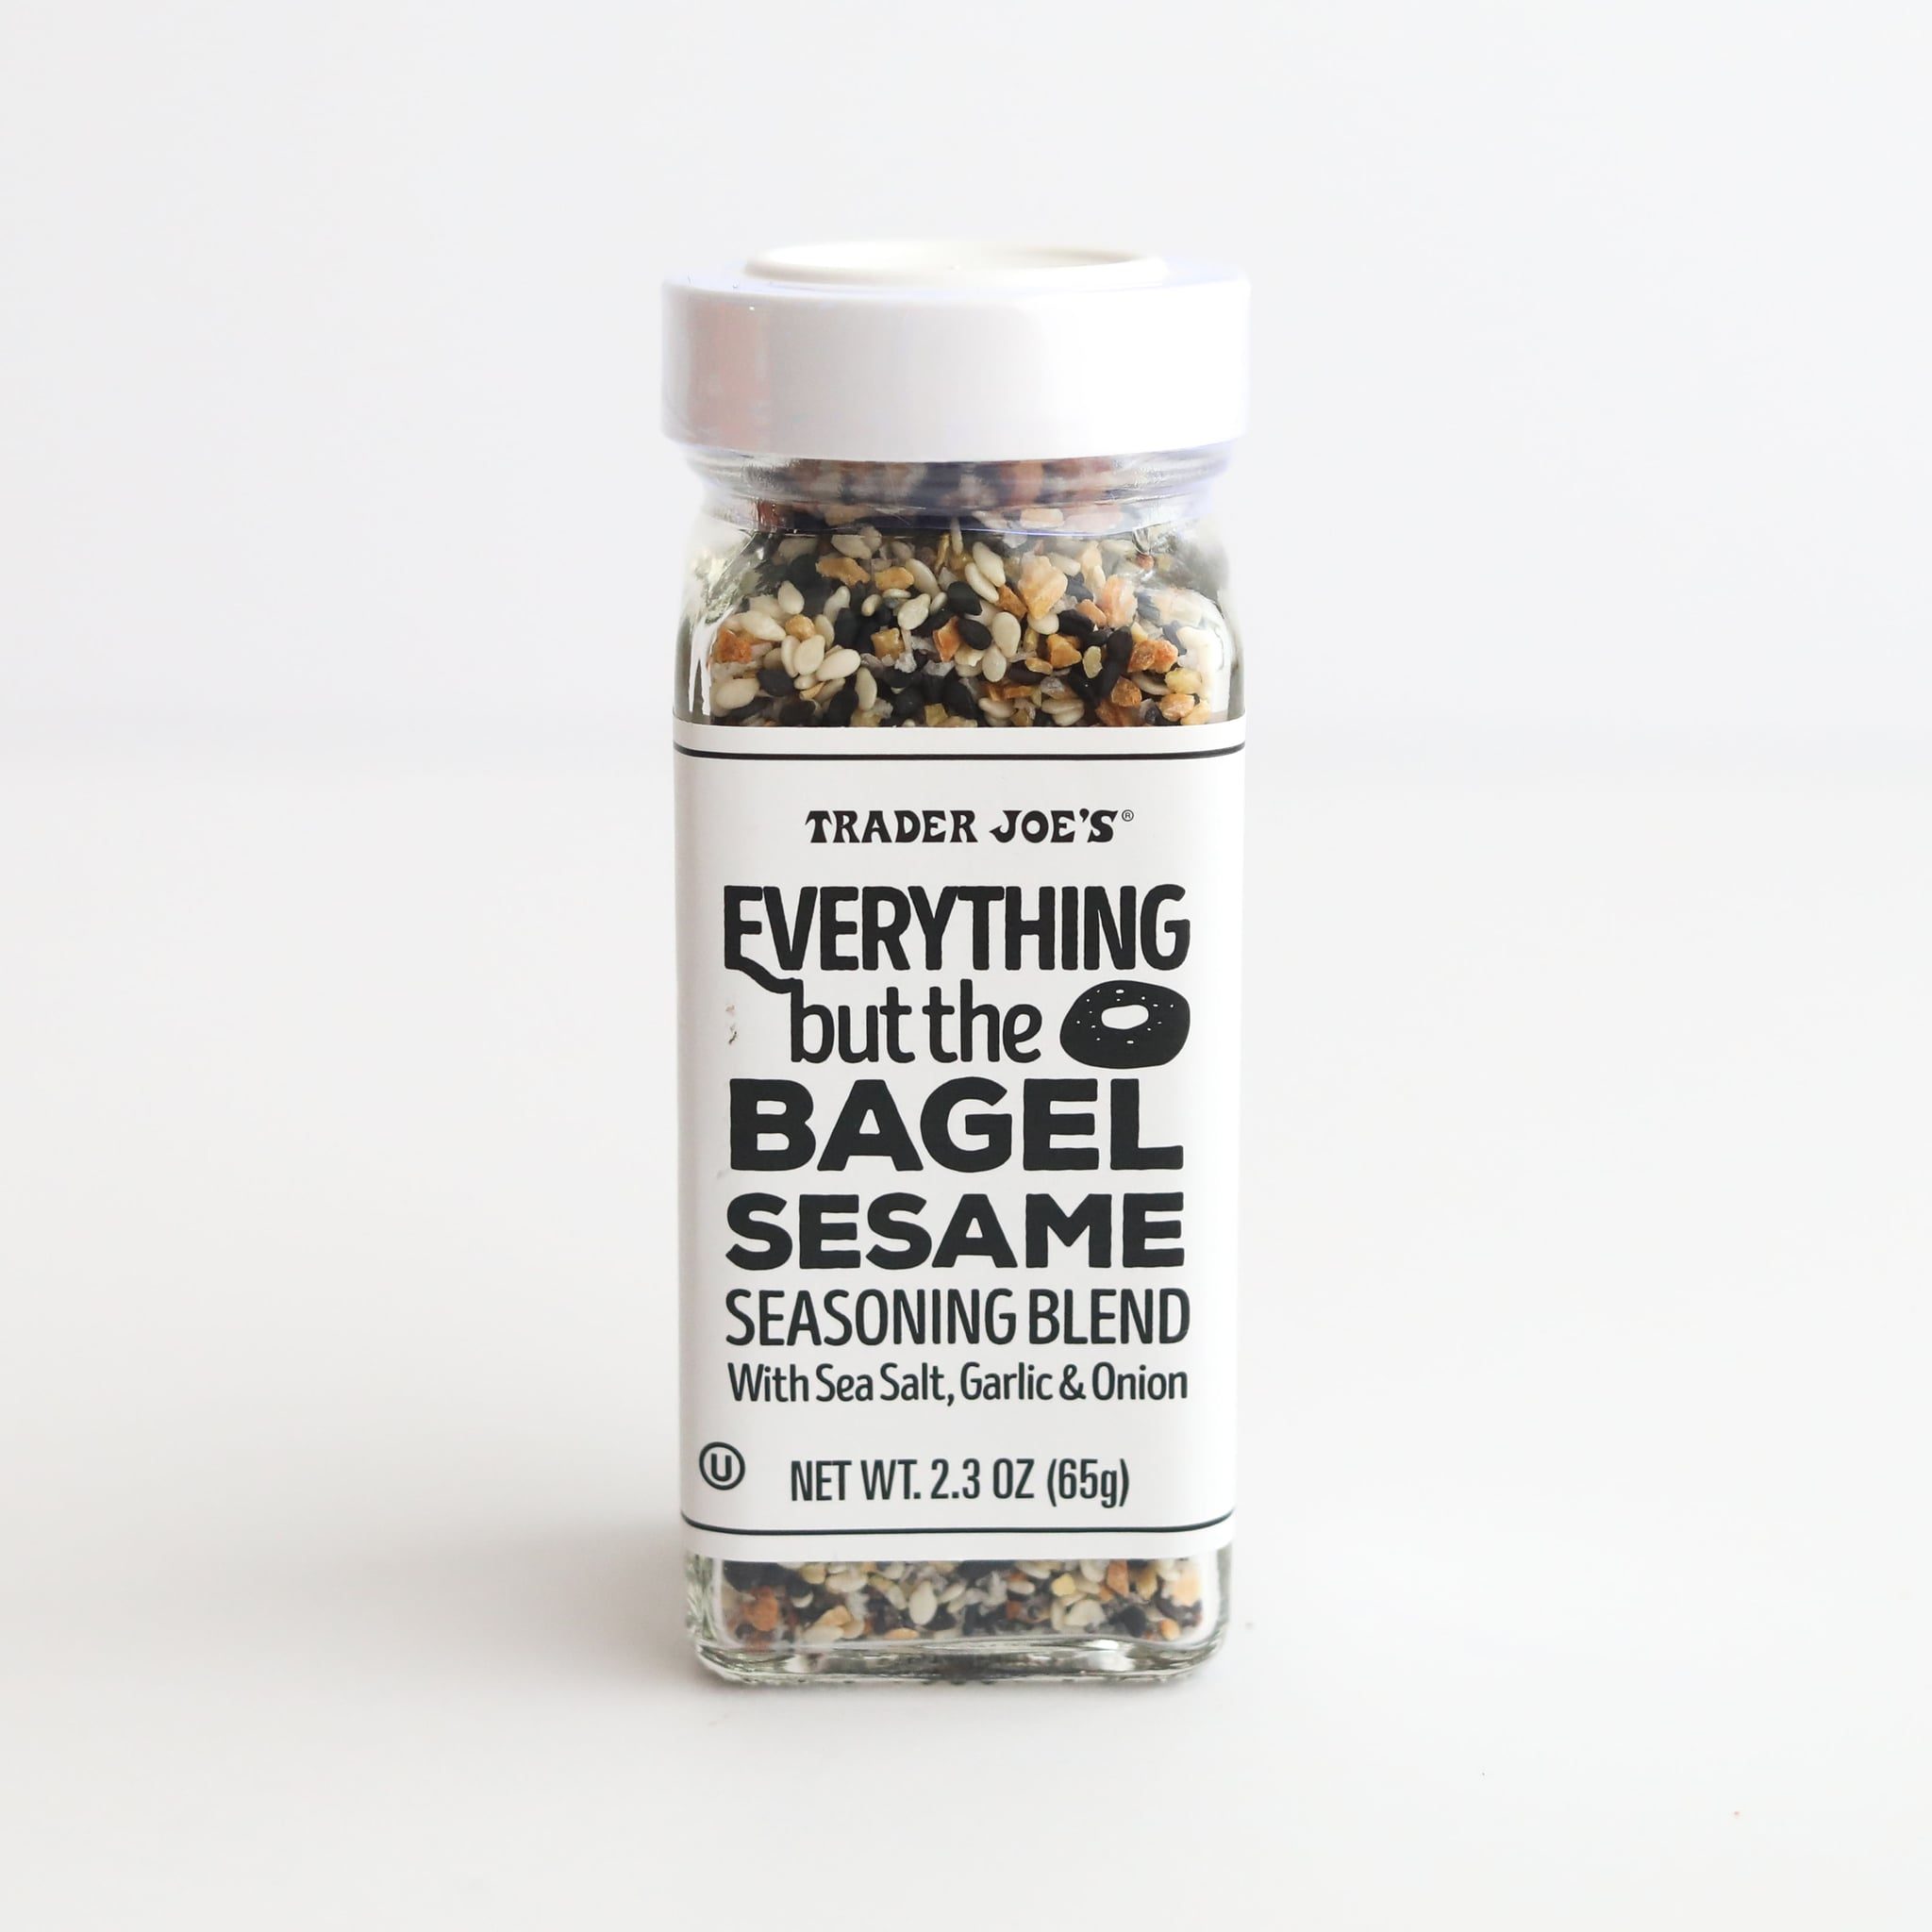 Image result for trader joe's everything but the bagel seasoning""